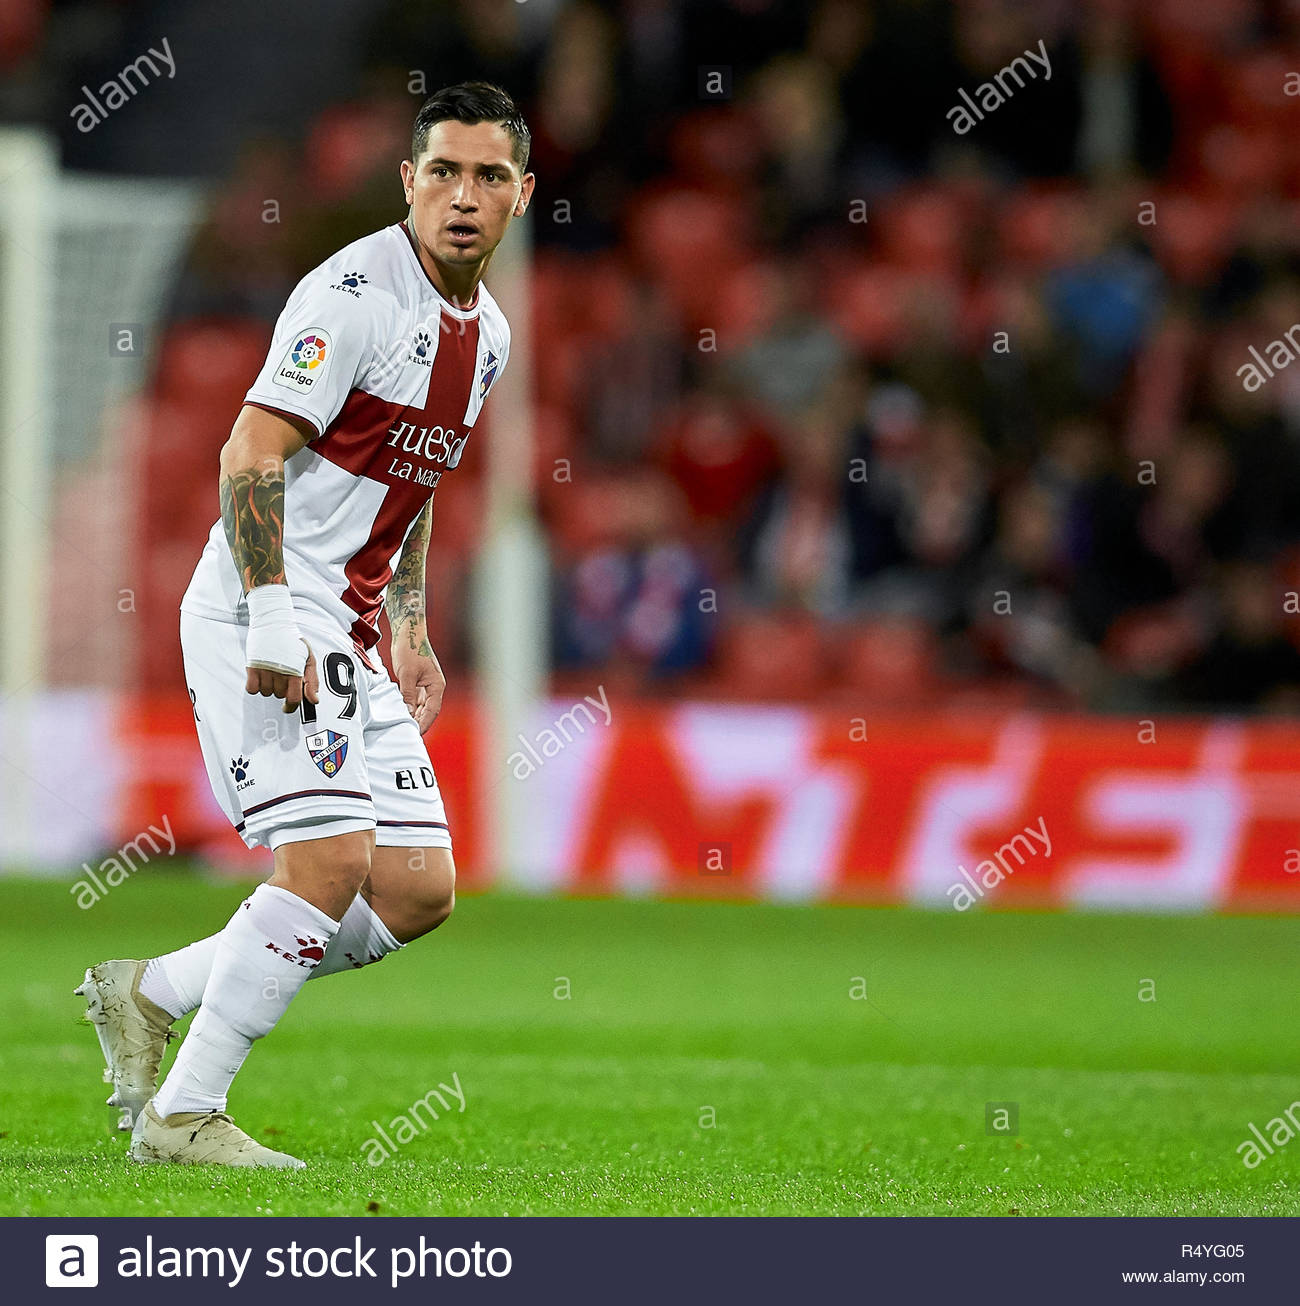 Bilbao, northern Spain, Wednesday, November, 28, 2018. (9) Cucho Hernandez during the Spanish Copa del Rey soccer match between Athletic Club Bilbao and S.D Huesca at San Mames stadium. Credit: Ion Alcoba Beitia/Alamy Live News - Stock Image